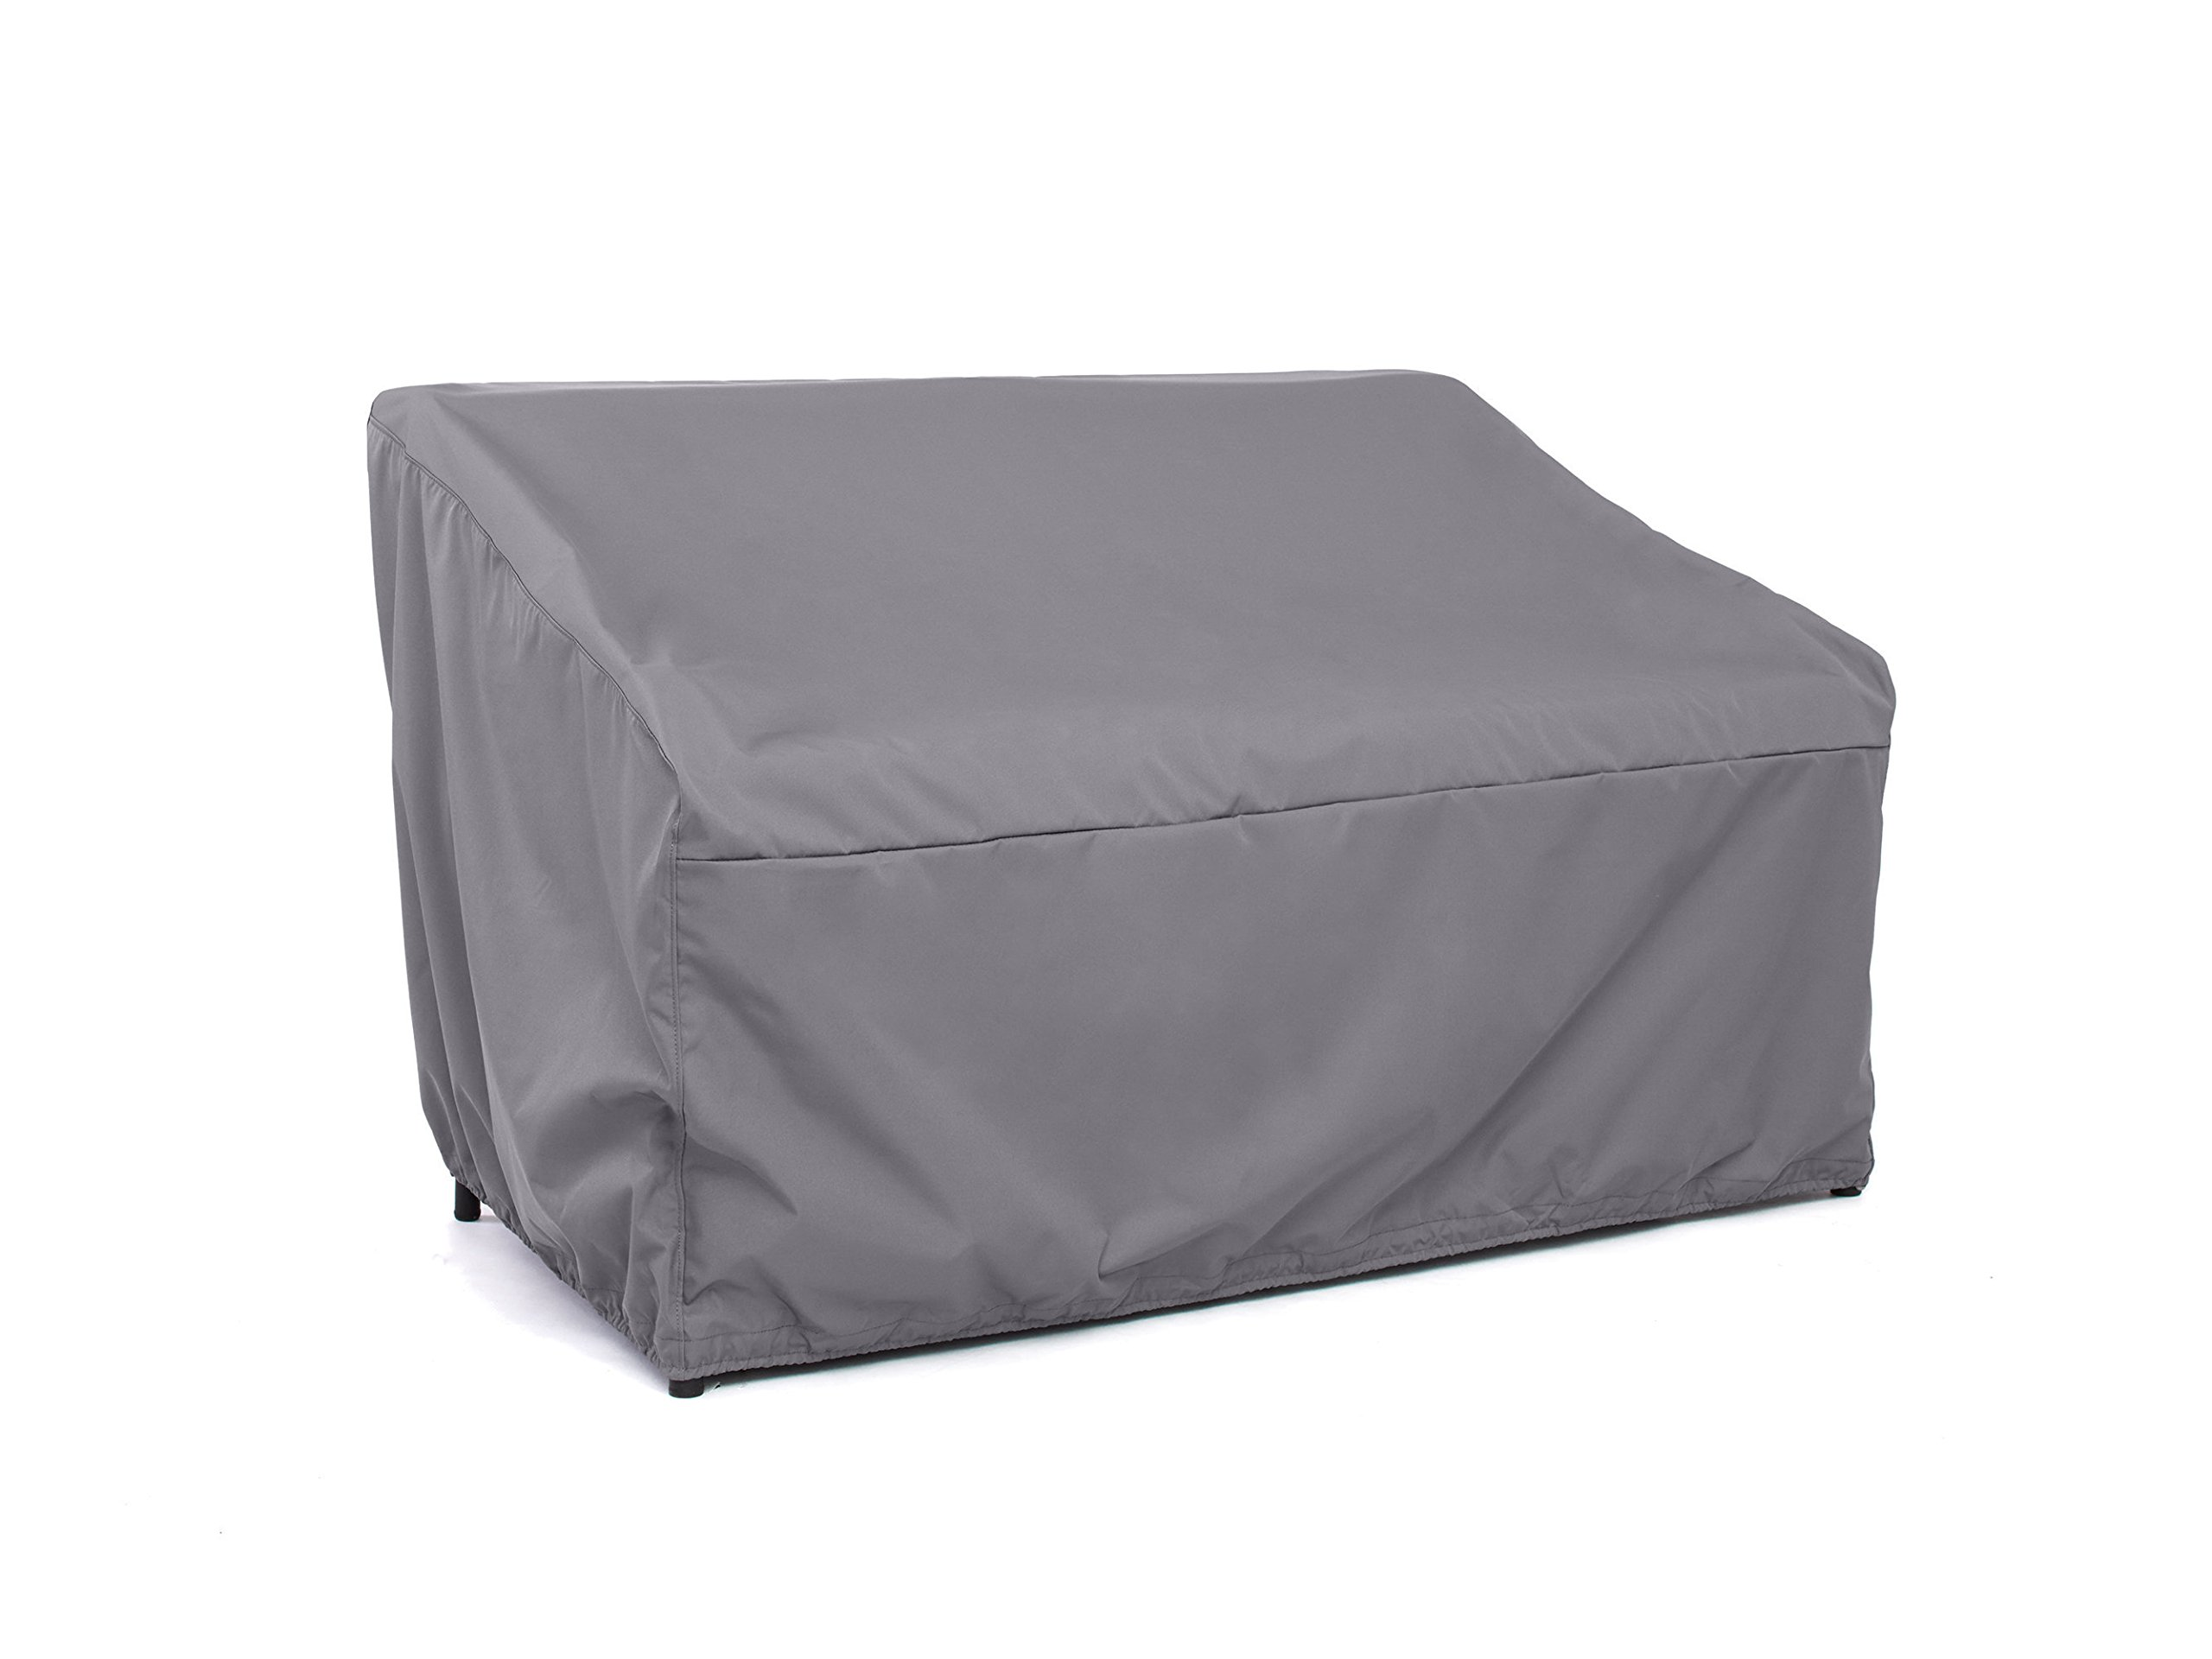 Covermates - Outdoor Patio Glider Cover - 64W x 34D x 38H - Elite Collection - 3 YR Warranty - Year Around Protection - Charcoal by Covermates